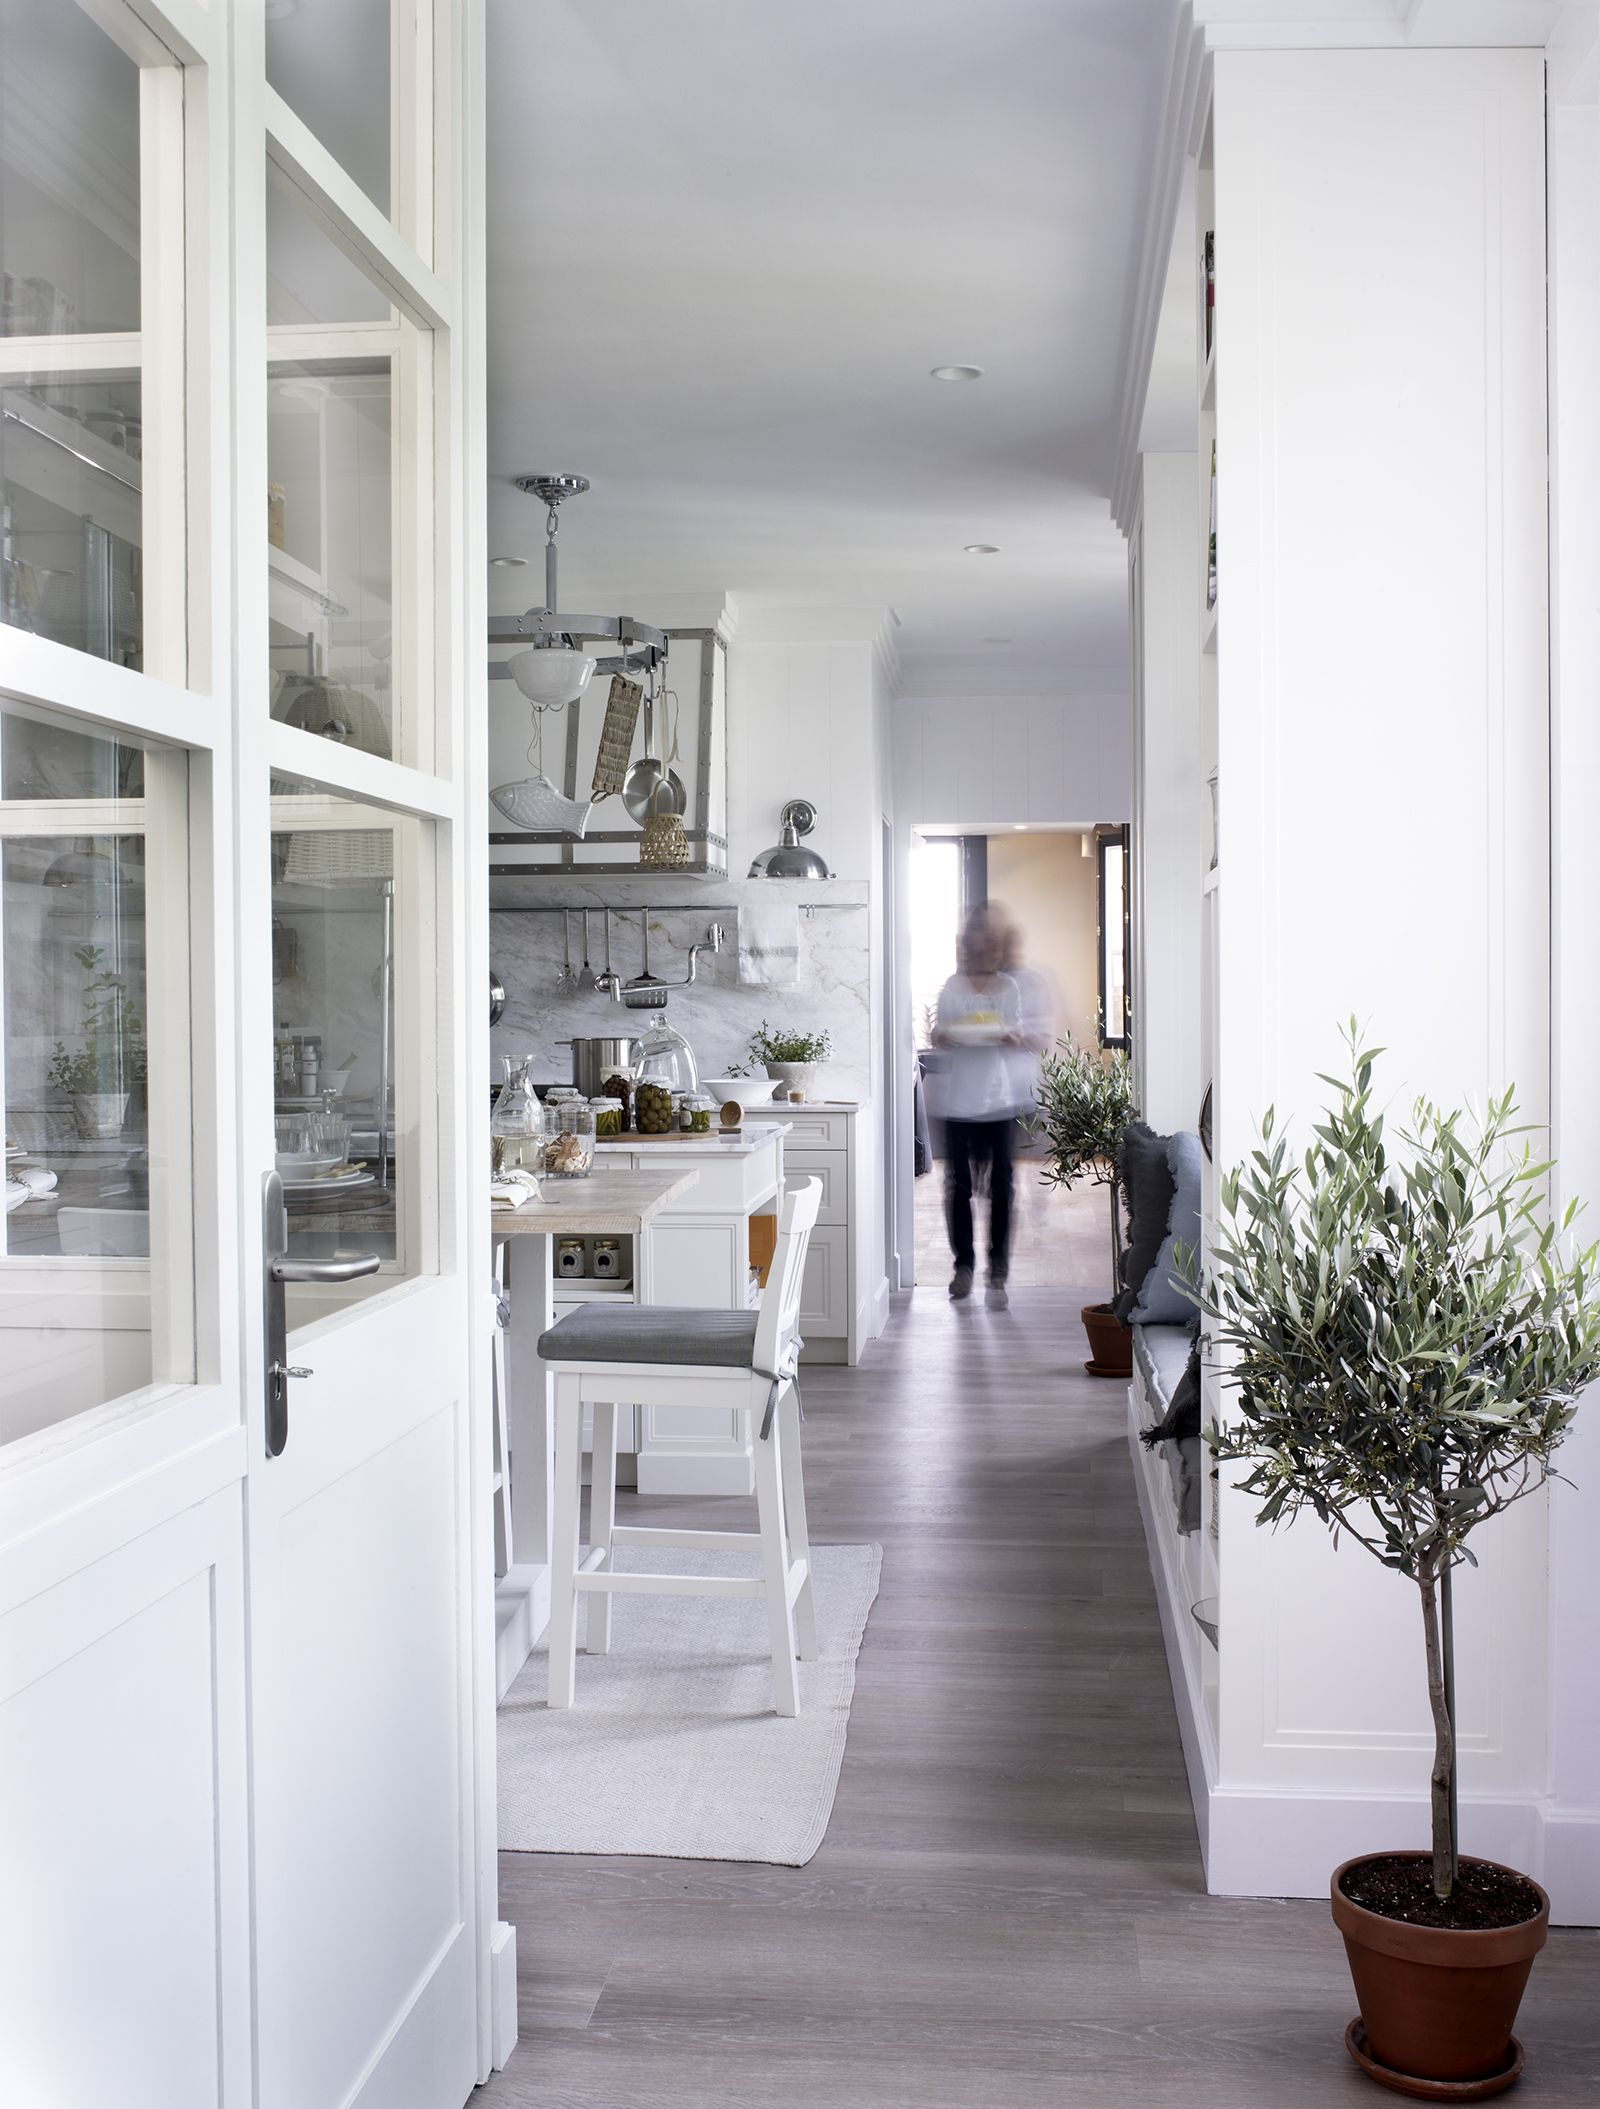 CasaDecor #CasaDecorMadrid #Cocina #Kitchen | my farm house ...